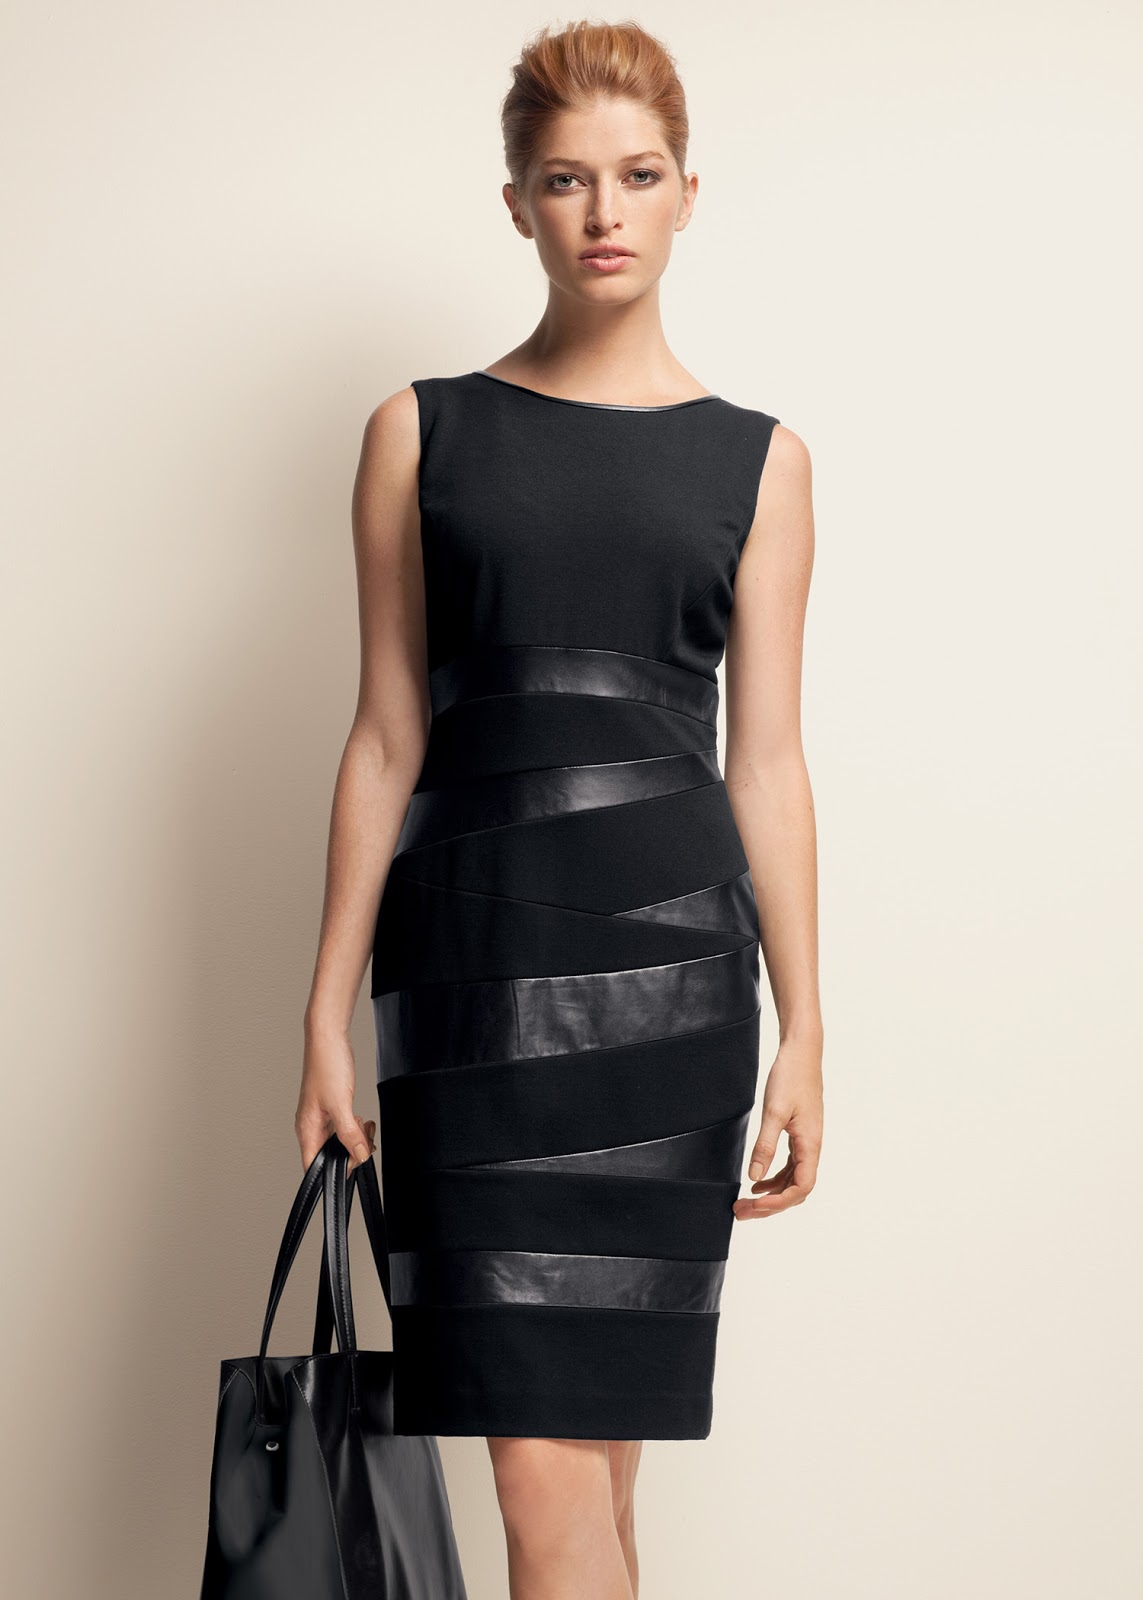 Diary of a Sewing Fanatic: Ponte & Faux Leather Dress